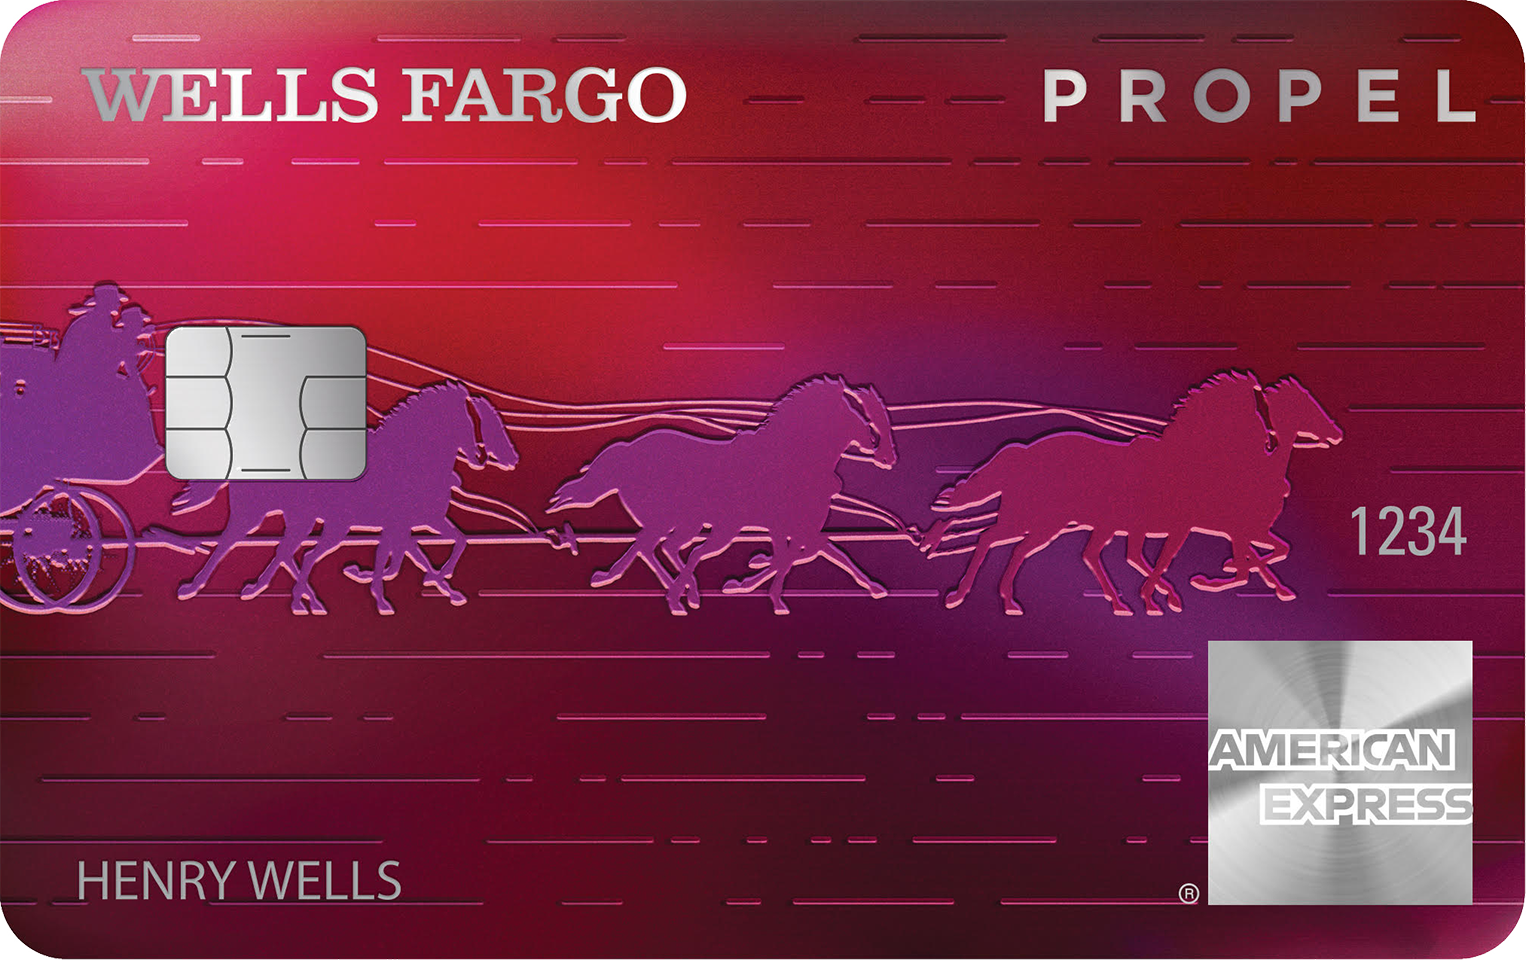 Image result for Wells Fargo Propel American Express Card